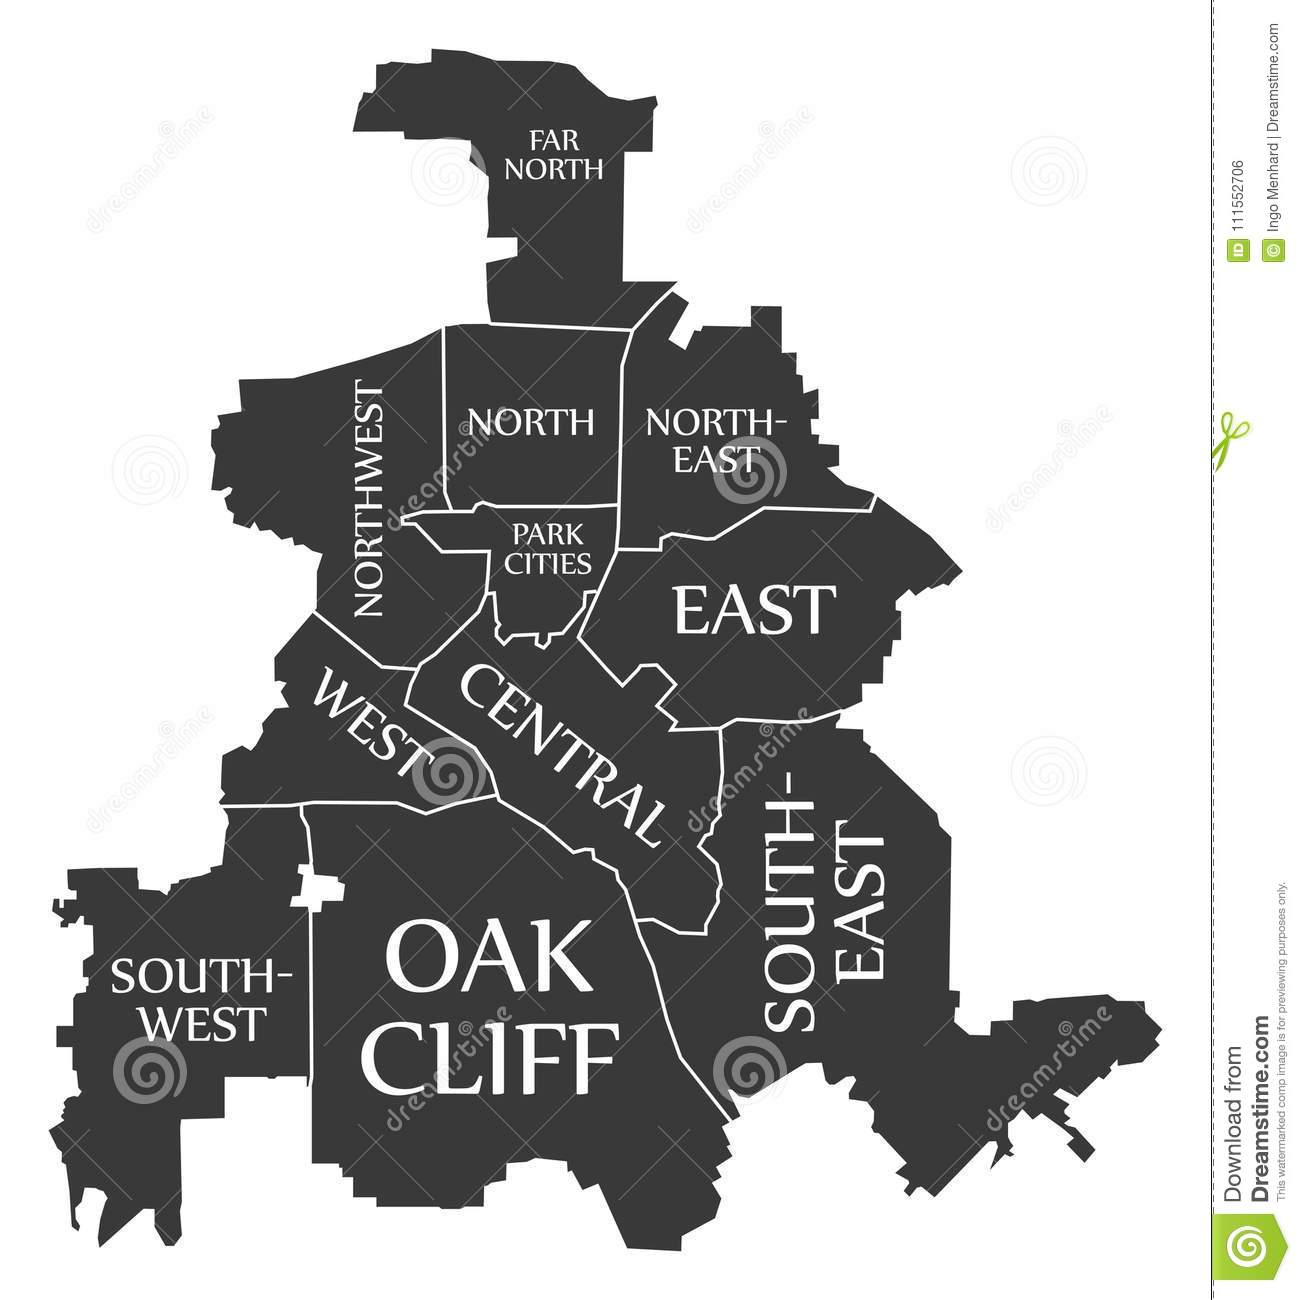 Map Of Texas Cities Only.Dallas Texas City Map Usa Labelled Black Illustration Stock